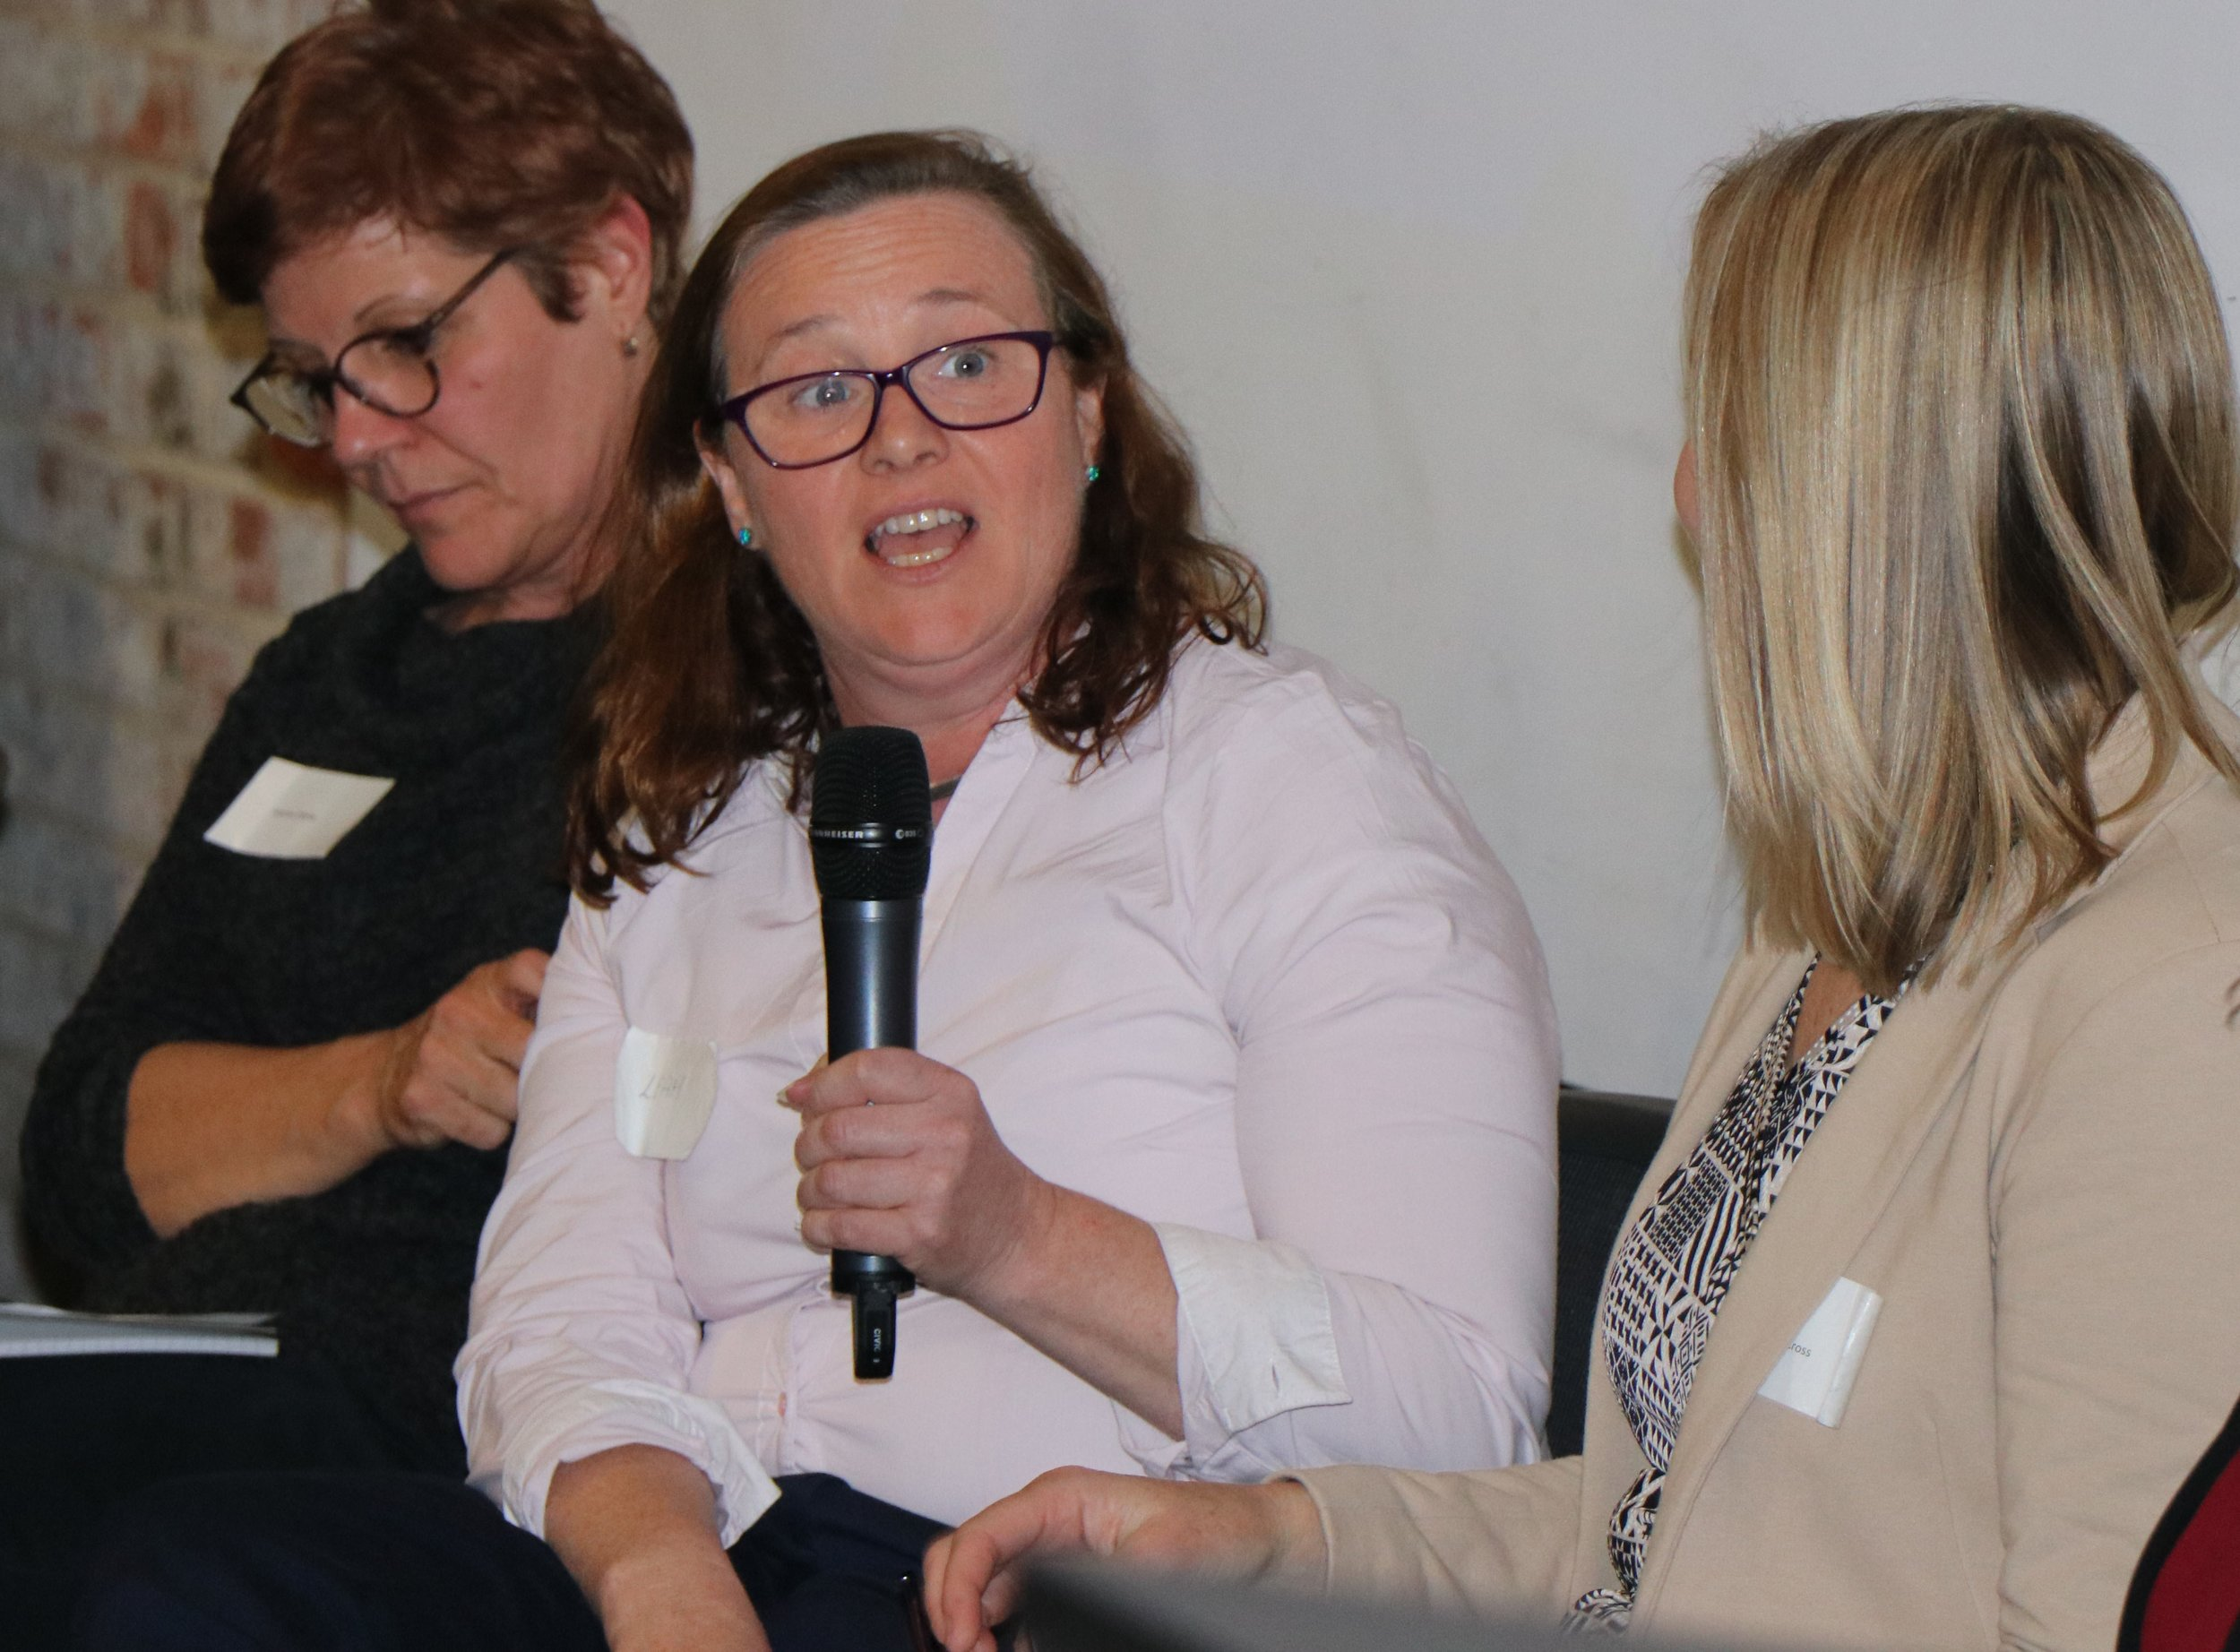 A woman, sitting between two other women, answers a question from the facilitator of a panel discussion.